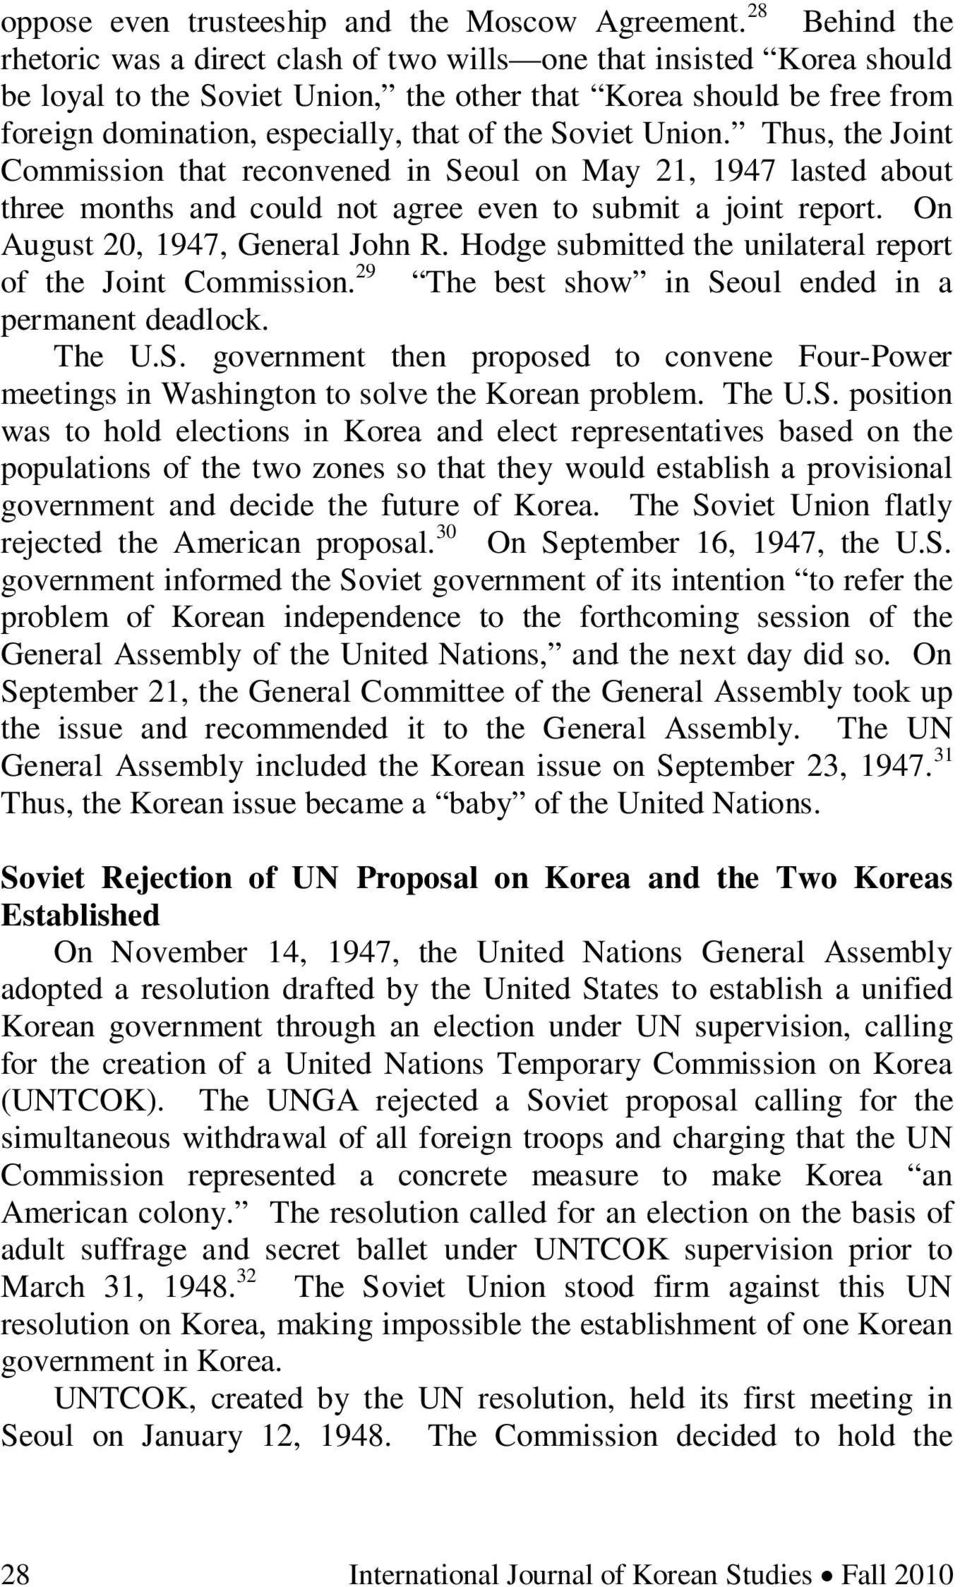 the Soviet Union. Thus, the Joint Commission that reconvened in Seoul on May 21, 1947 lasted about three months and could not agree even to submit a joint report. On August 20, 1947, General John R.